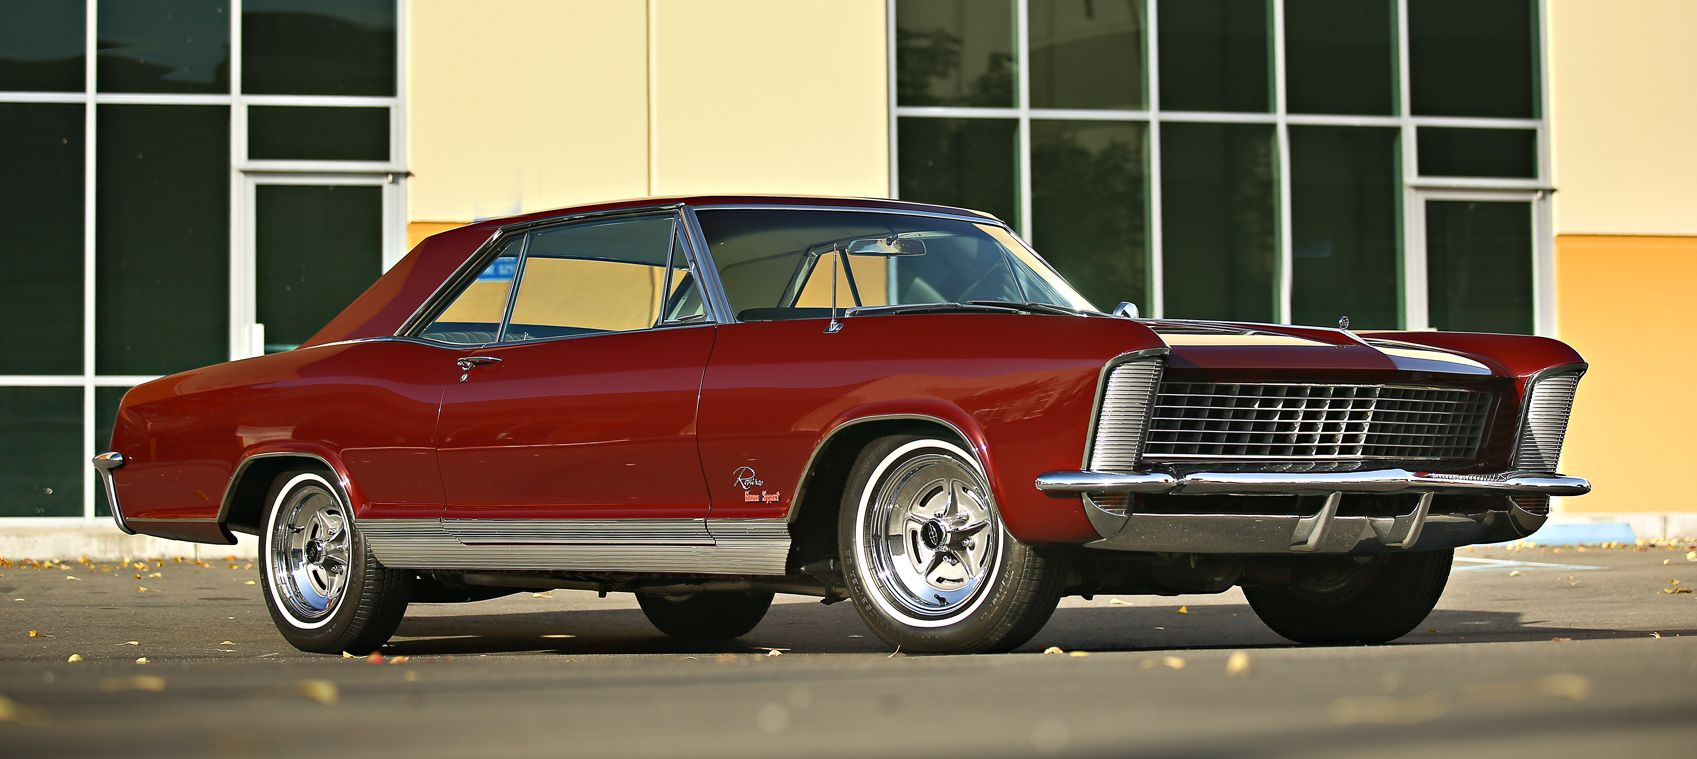 1965 Buick Riviera GS Wallpapers hd